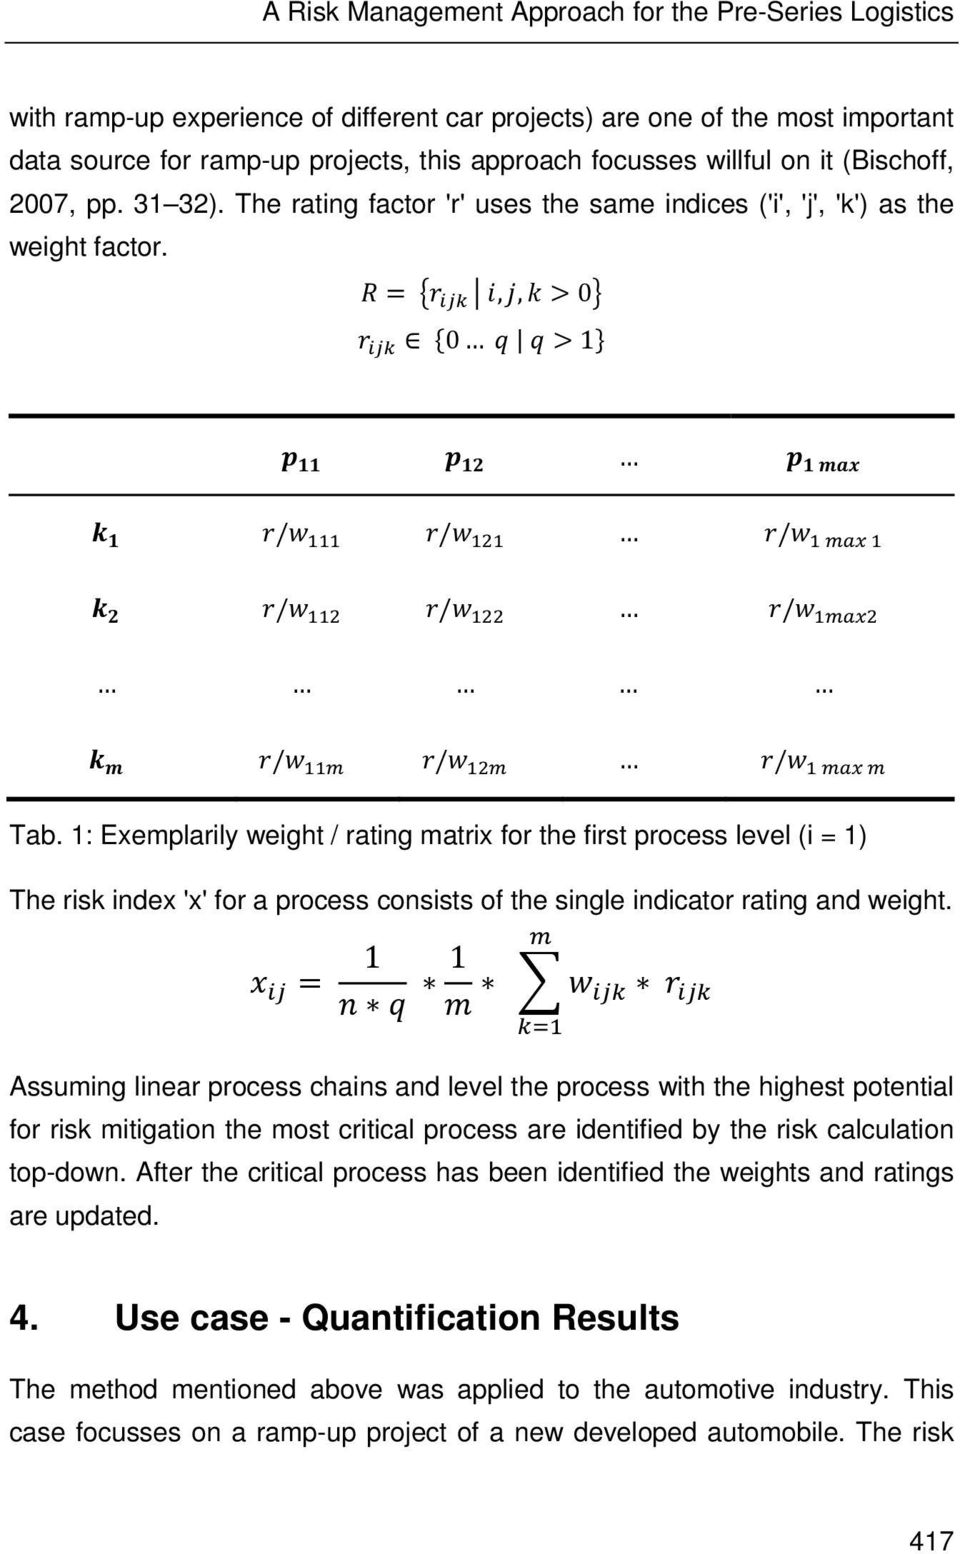 1: Exemplarily weight / rating matrix for the first process level (i = 1) The risk index 'x' for a process consists of the single indicator rating and weight.